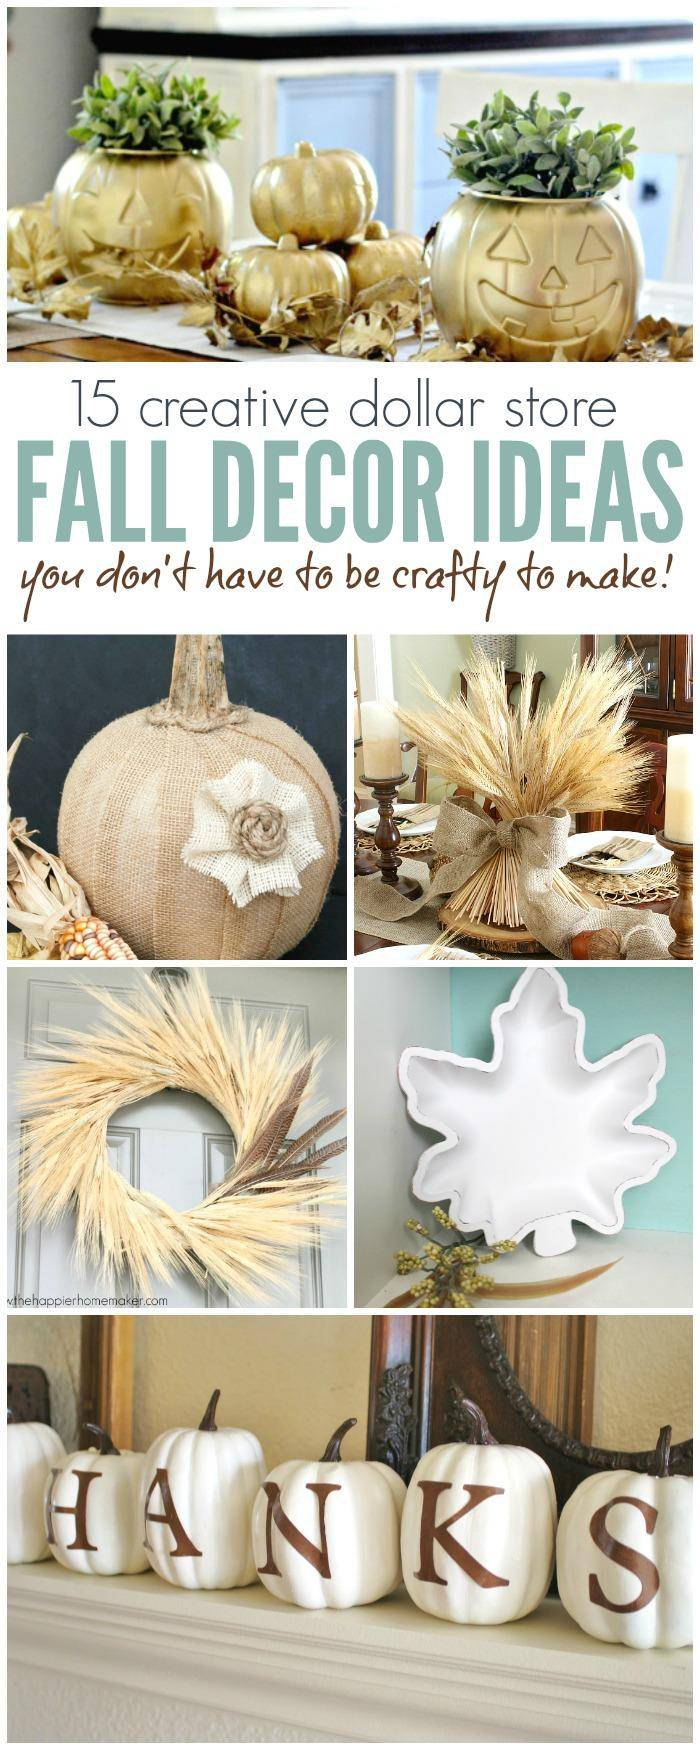 Dollar Store Fall Decor Ideas Anyone Can Make, Fall Table Settings, Thanksgiving Decorations and Pumpkin Makeovers to Decorate your Home for Fall